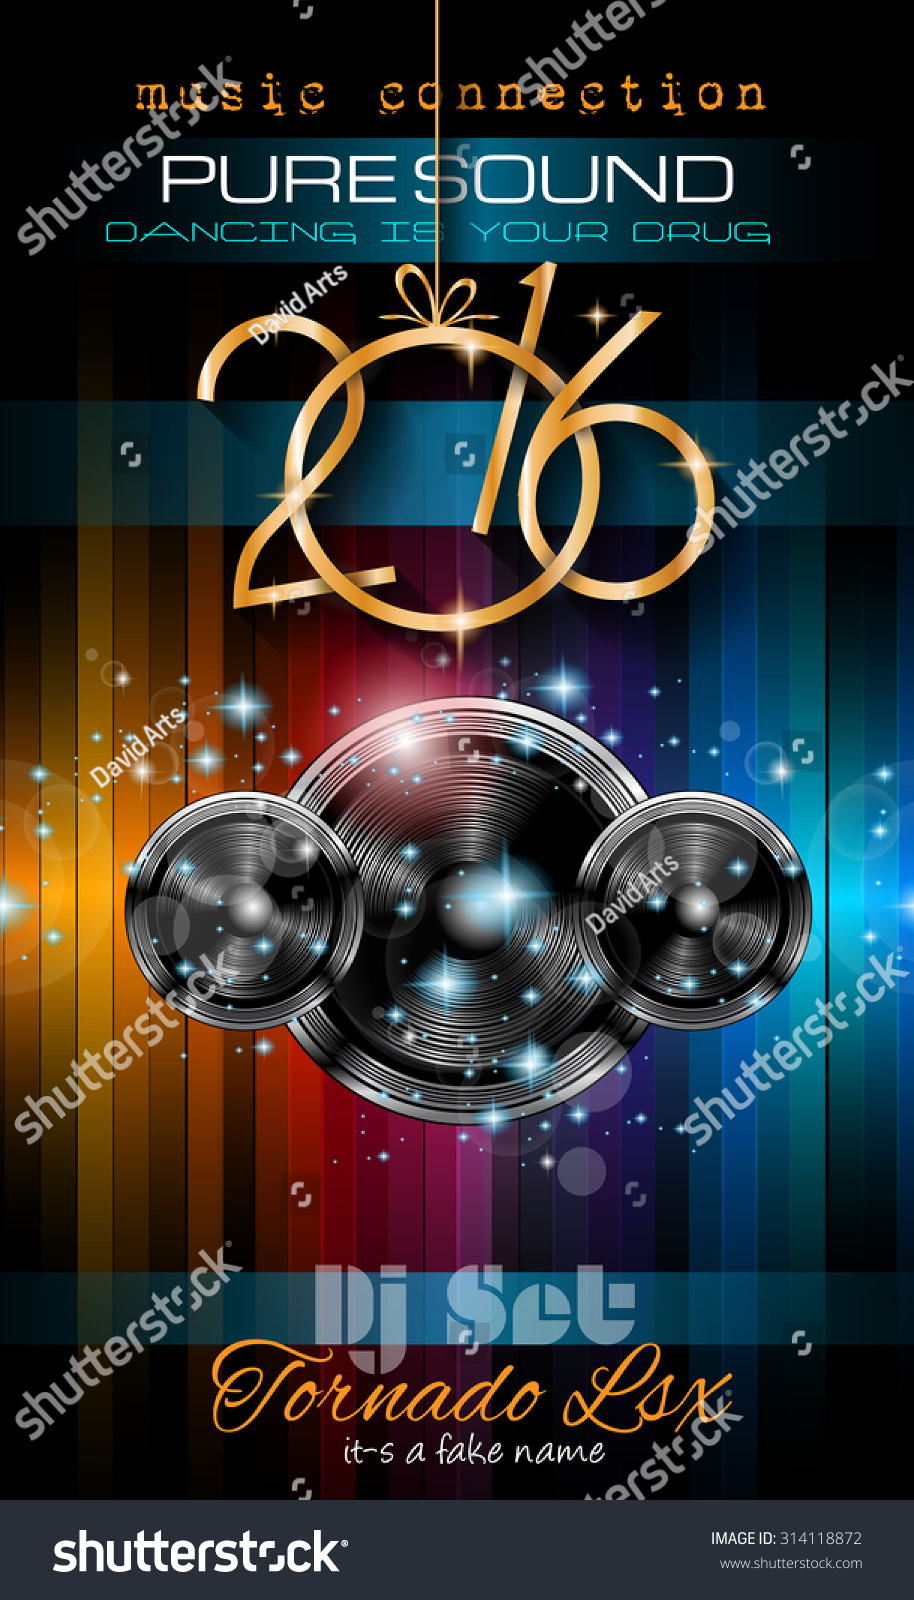 2016 new years party flyer for club music night special events layout template background with